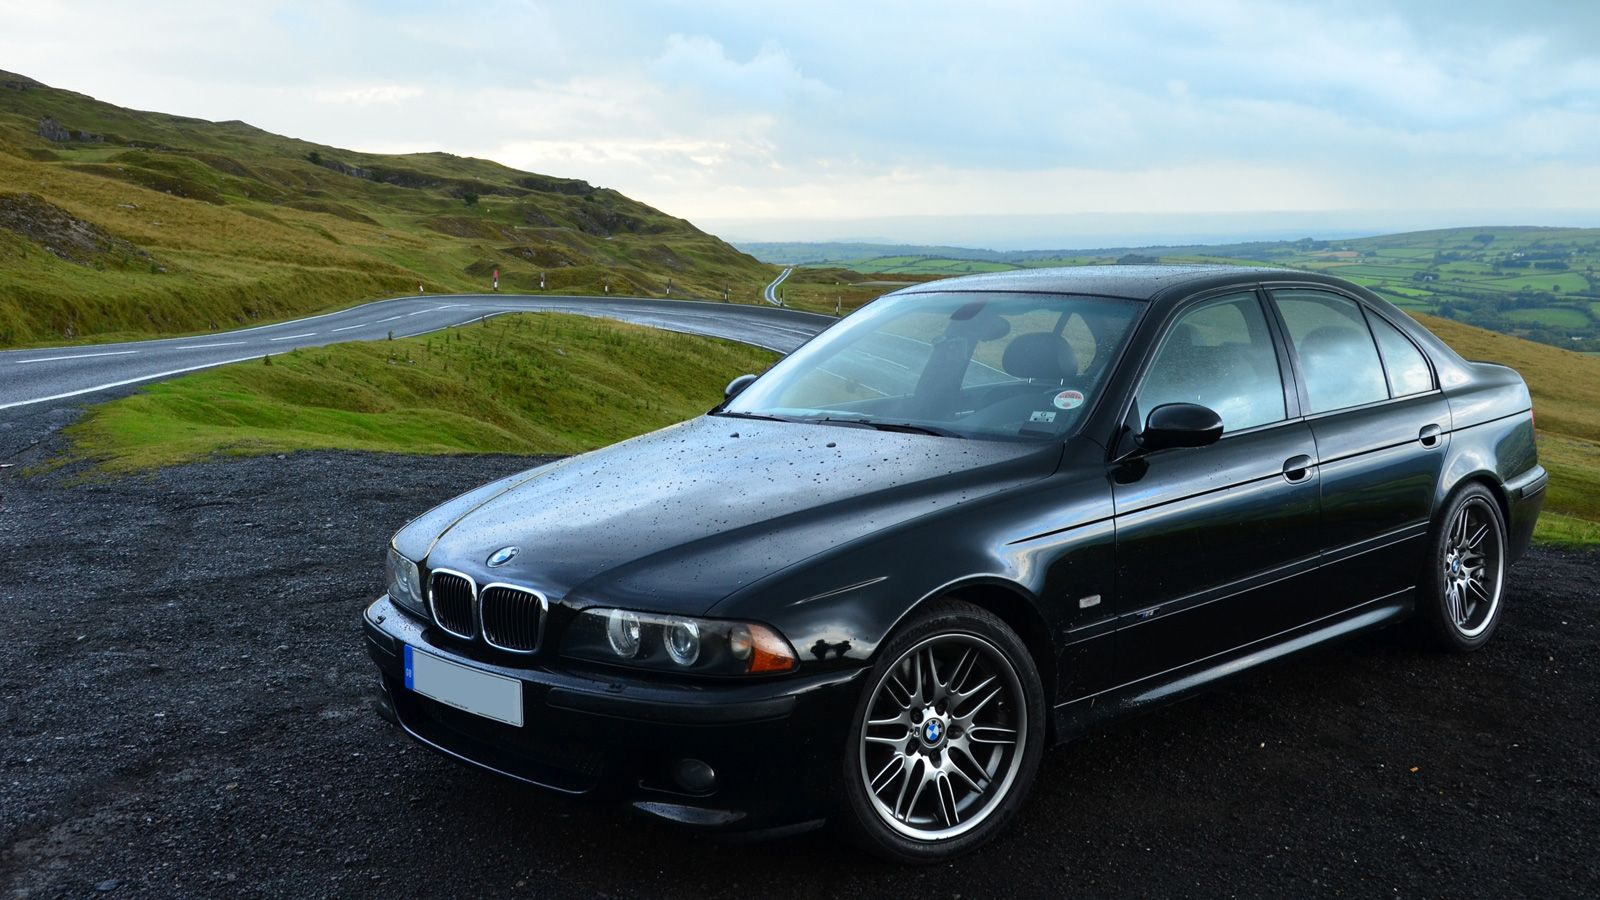 Your Ridiculously Cool Bmw M5 Wallpaper Is Here Bmw Bmw E39 Bmw M5